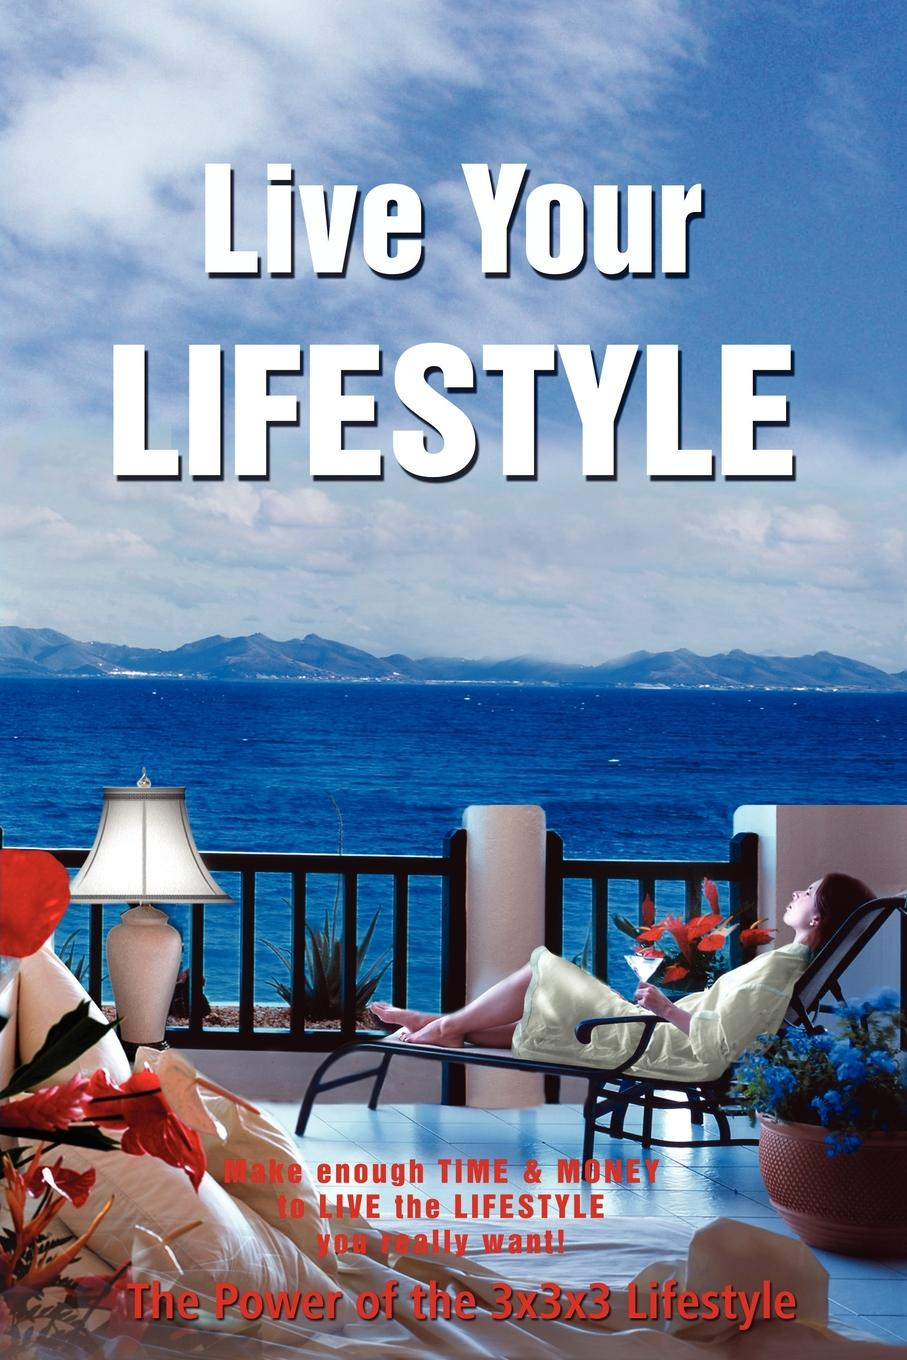 JD Live Your Lifestyle this book loves you